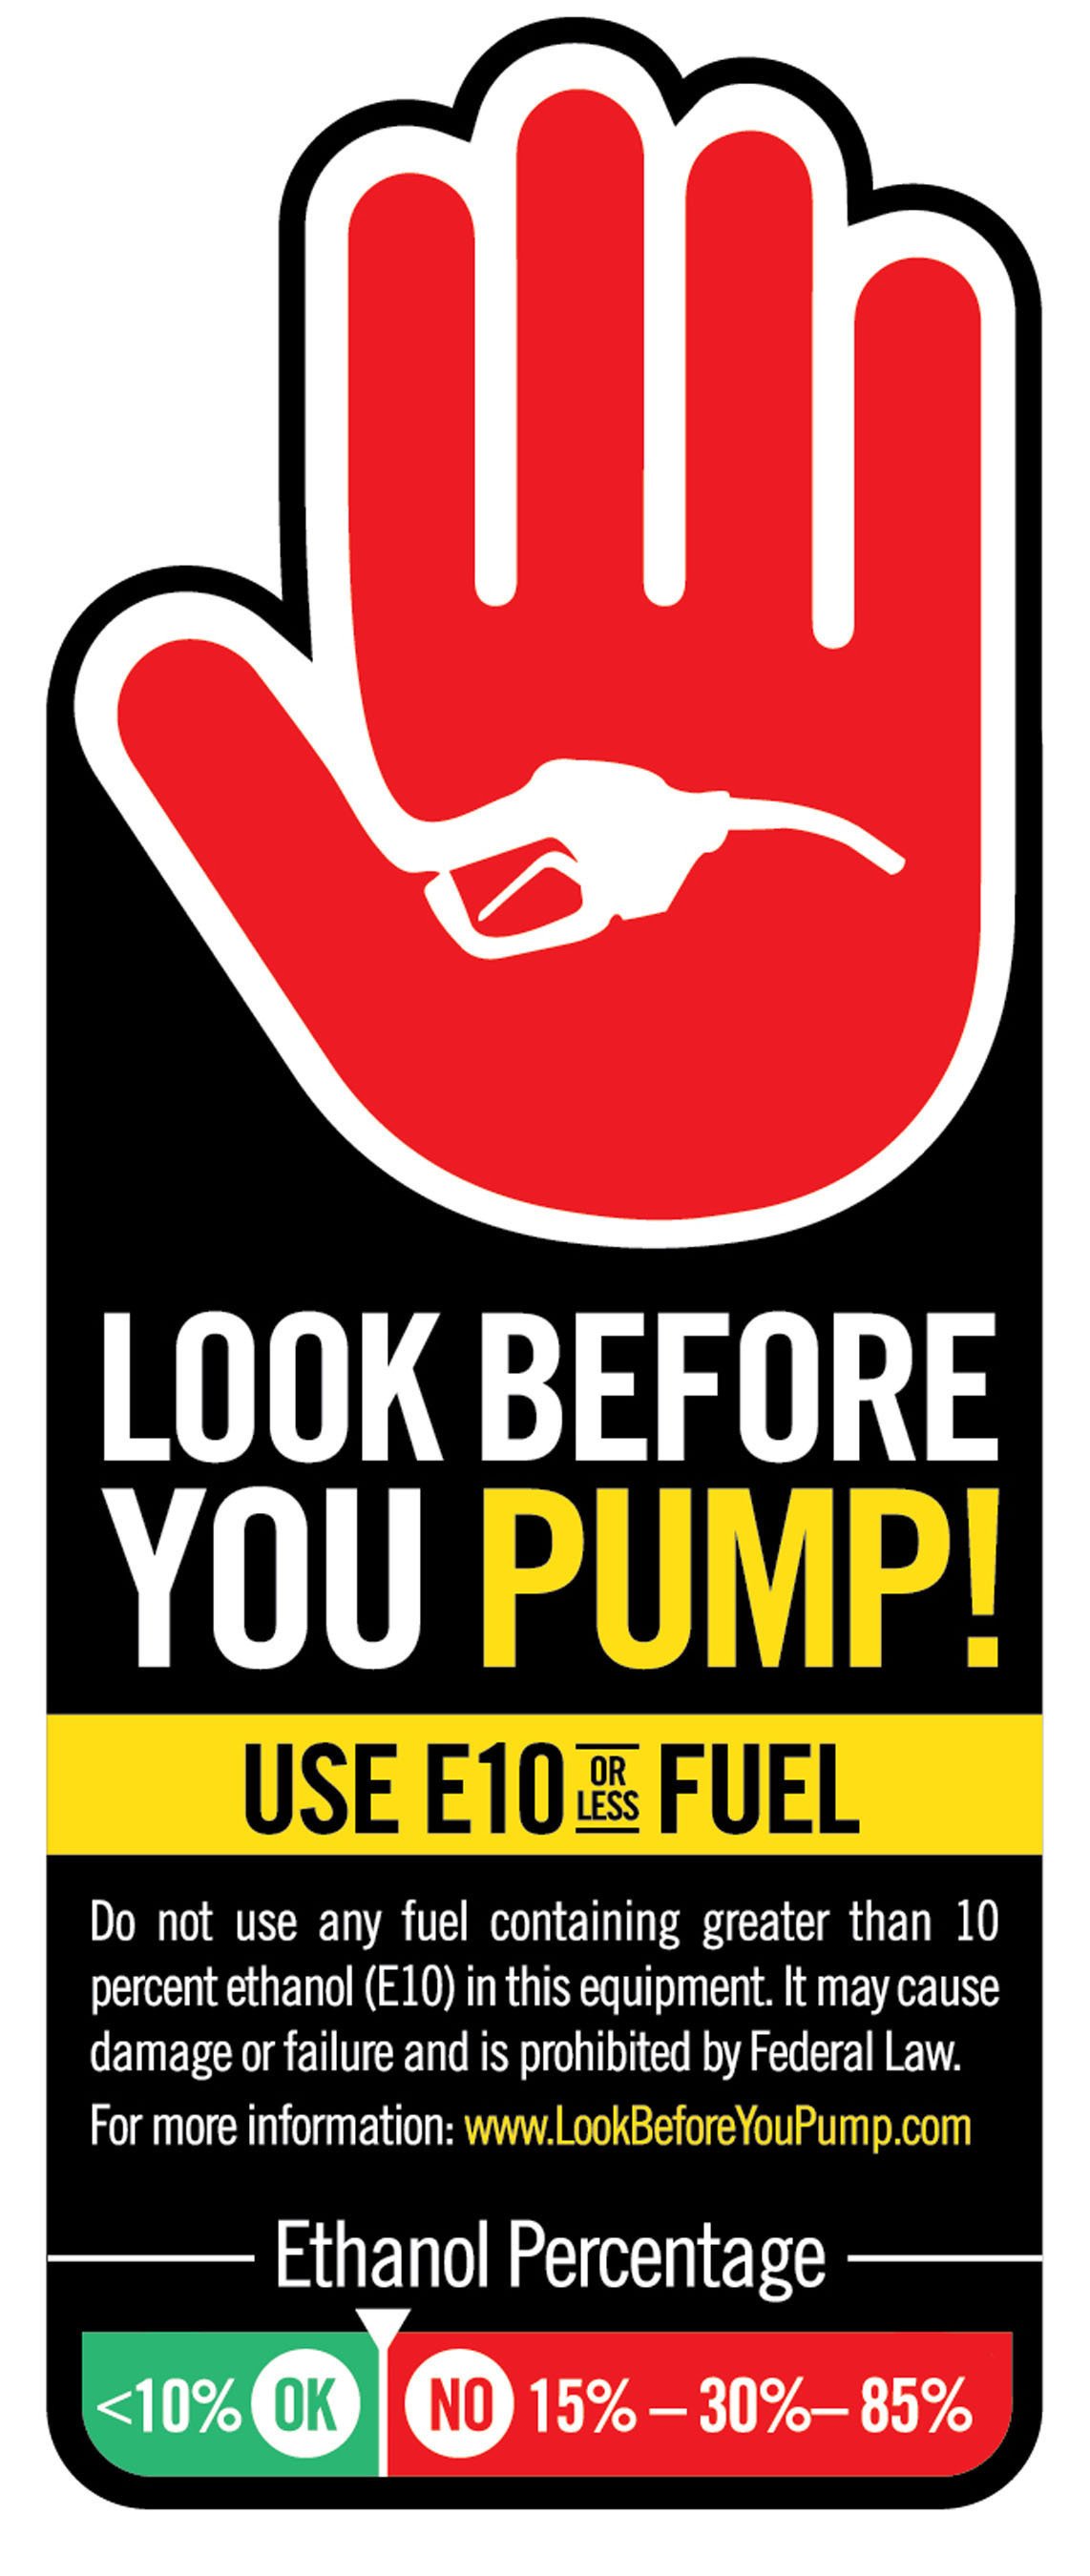 Consumers cautioned to 'Look Before You Pump' at Gas Station. Ethanol education and consumer protection campaign from the Outdoor Power Equipment Institute reminds consumers that it is harmful and illegal to use higher than 10 percent ethanol gas in any outdoor power equipment, such as mowers, chain saws, snow throwers, UTVs, generators and other small engine products. Kris Kiser of OPEI says 'Don't assume that the gas you put in your car can still go in your mower, chain saw or generator.' Remember to 'Look Before You Pump!'.